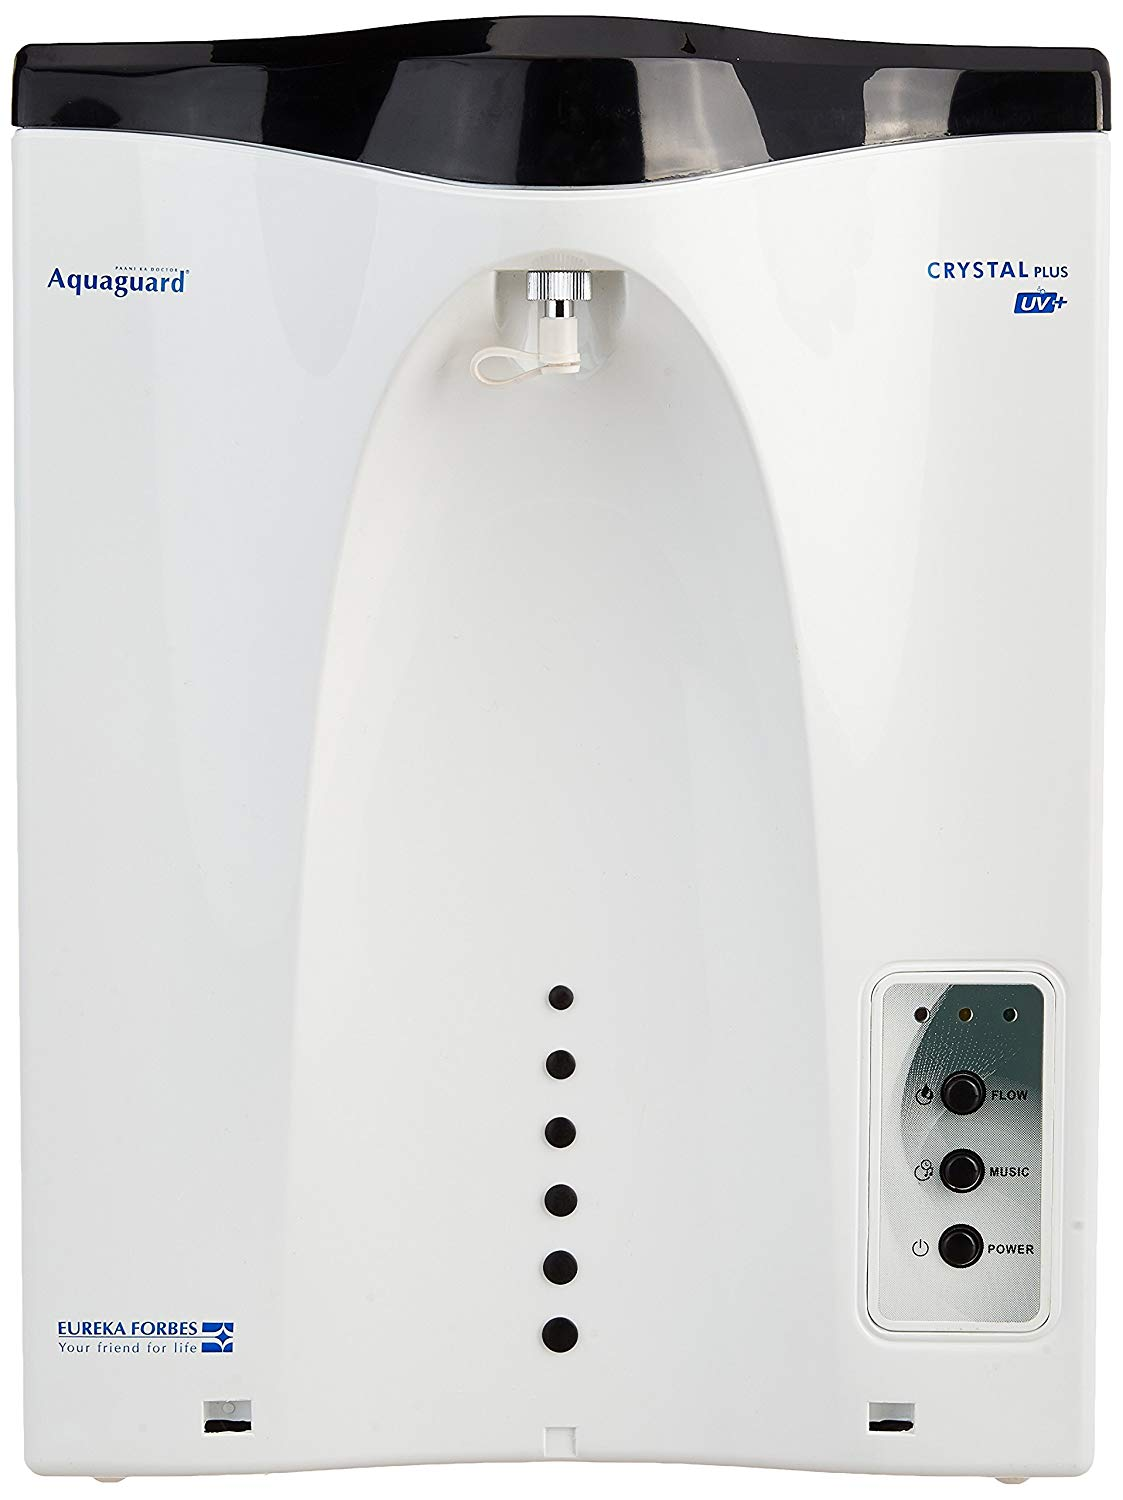 Eureka Forbes Aquaguard Crystal Plus UV Water Purifier Photo1